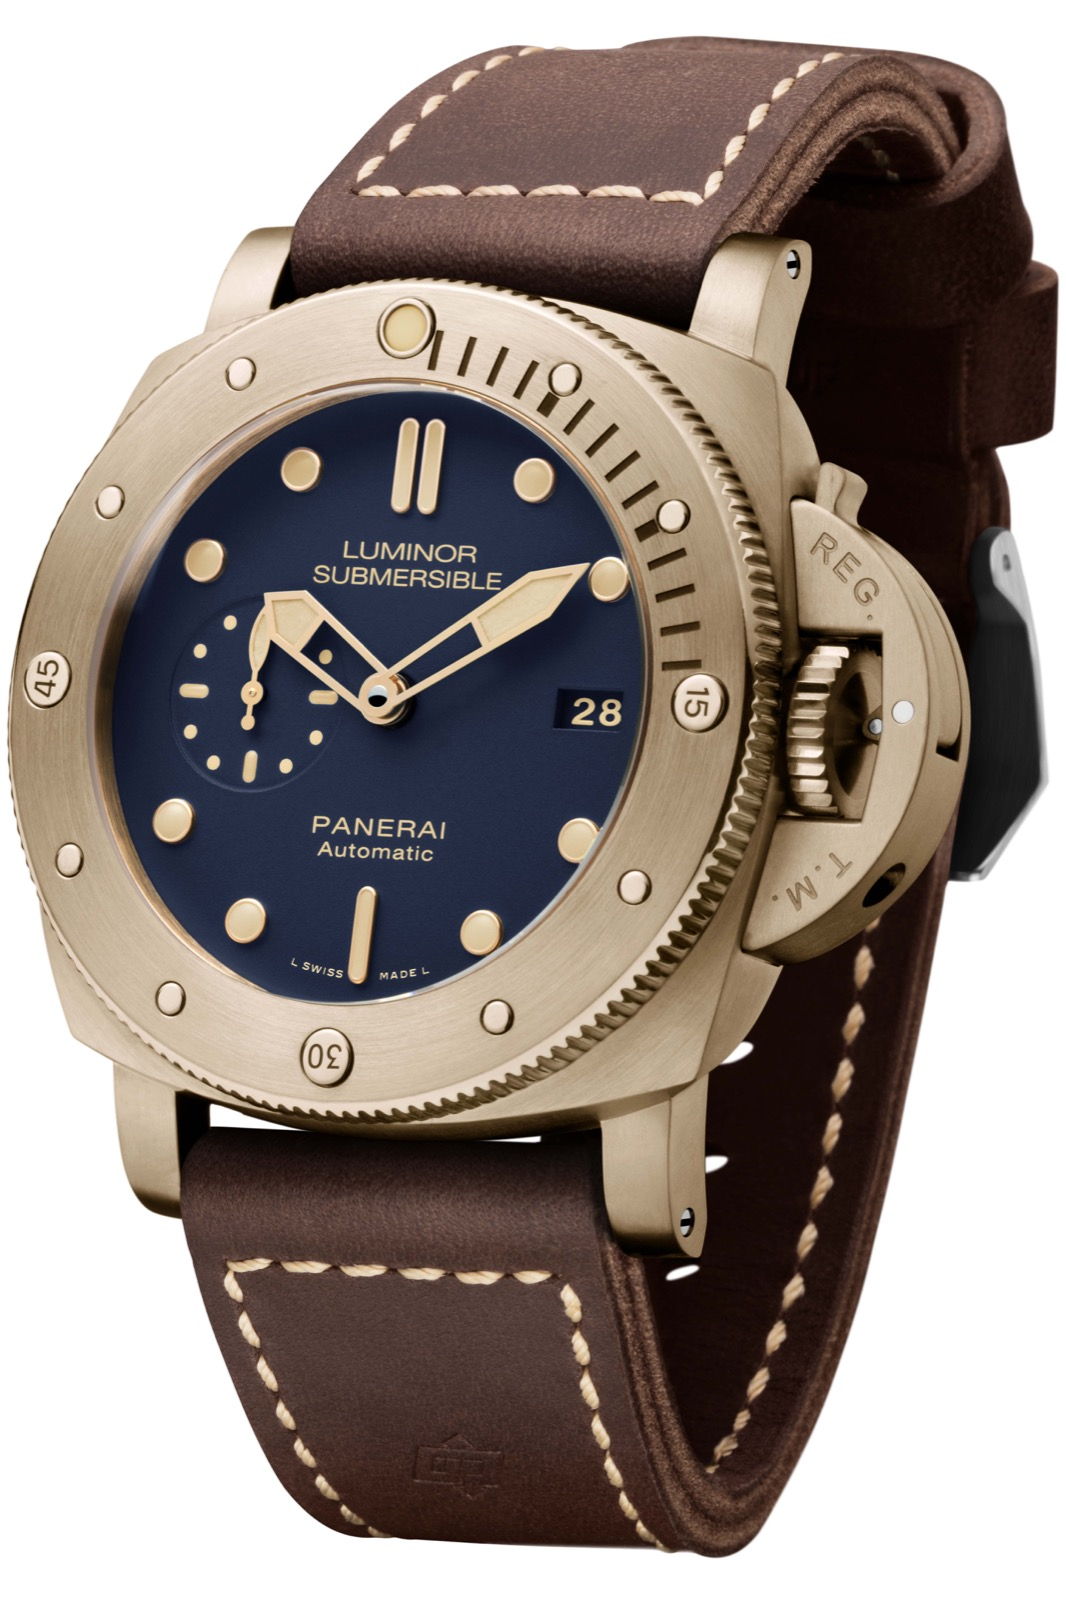 PANERAI LUMINOR SUBMERSIBLE 1950 3 DAYS AUTOMATIC BRONZO (PAM671) - 47mm